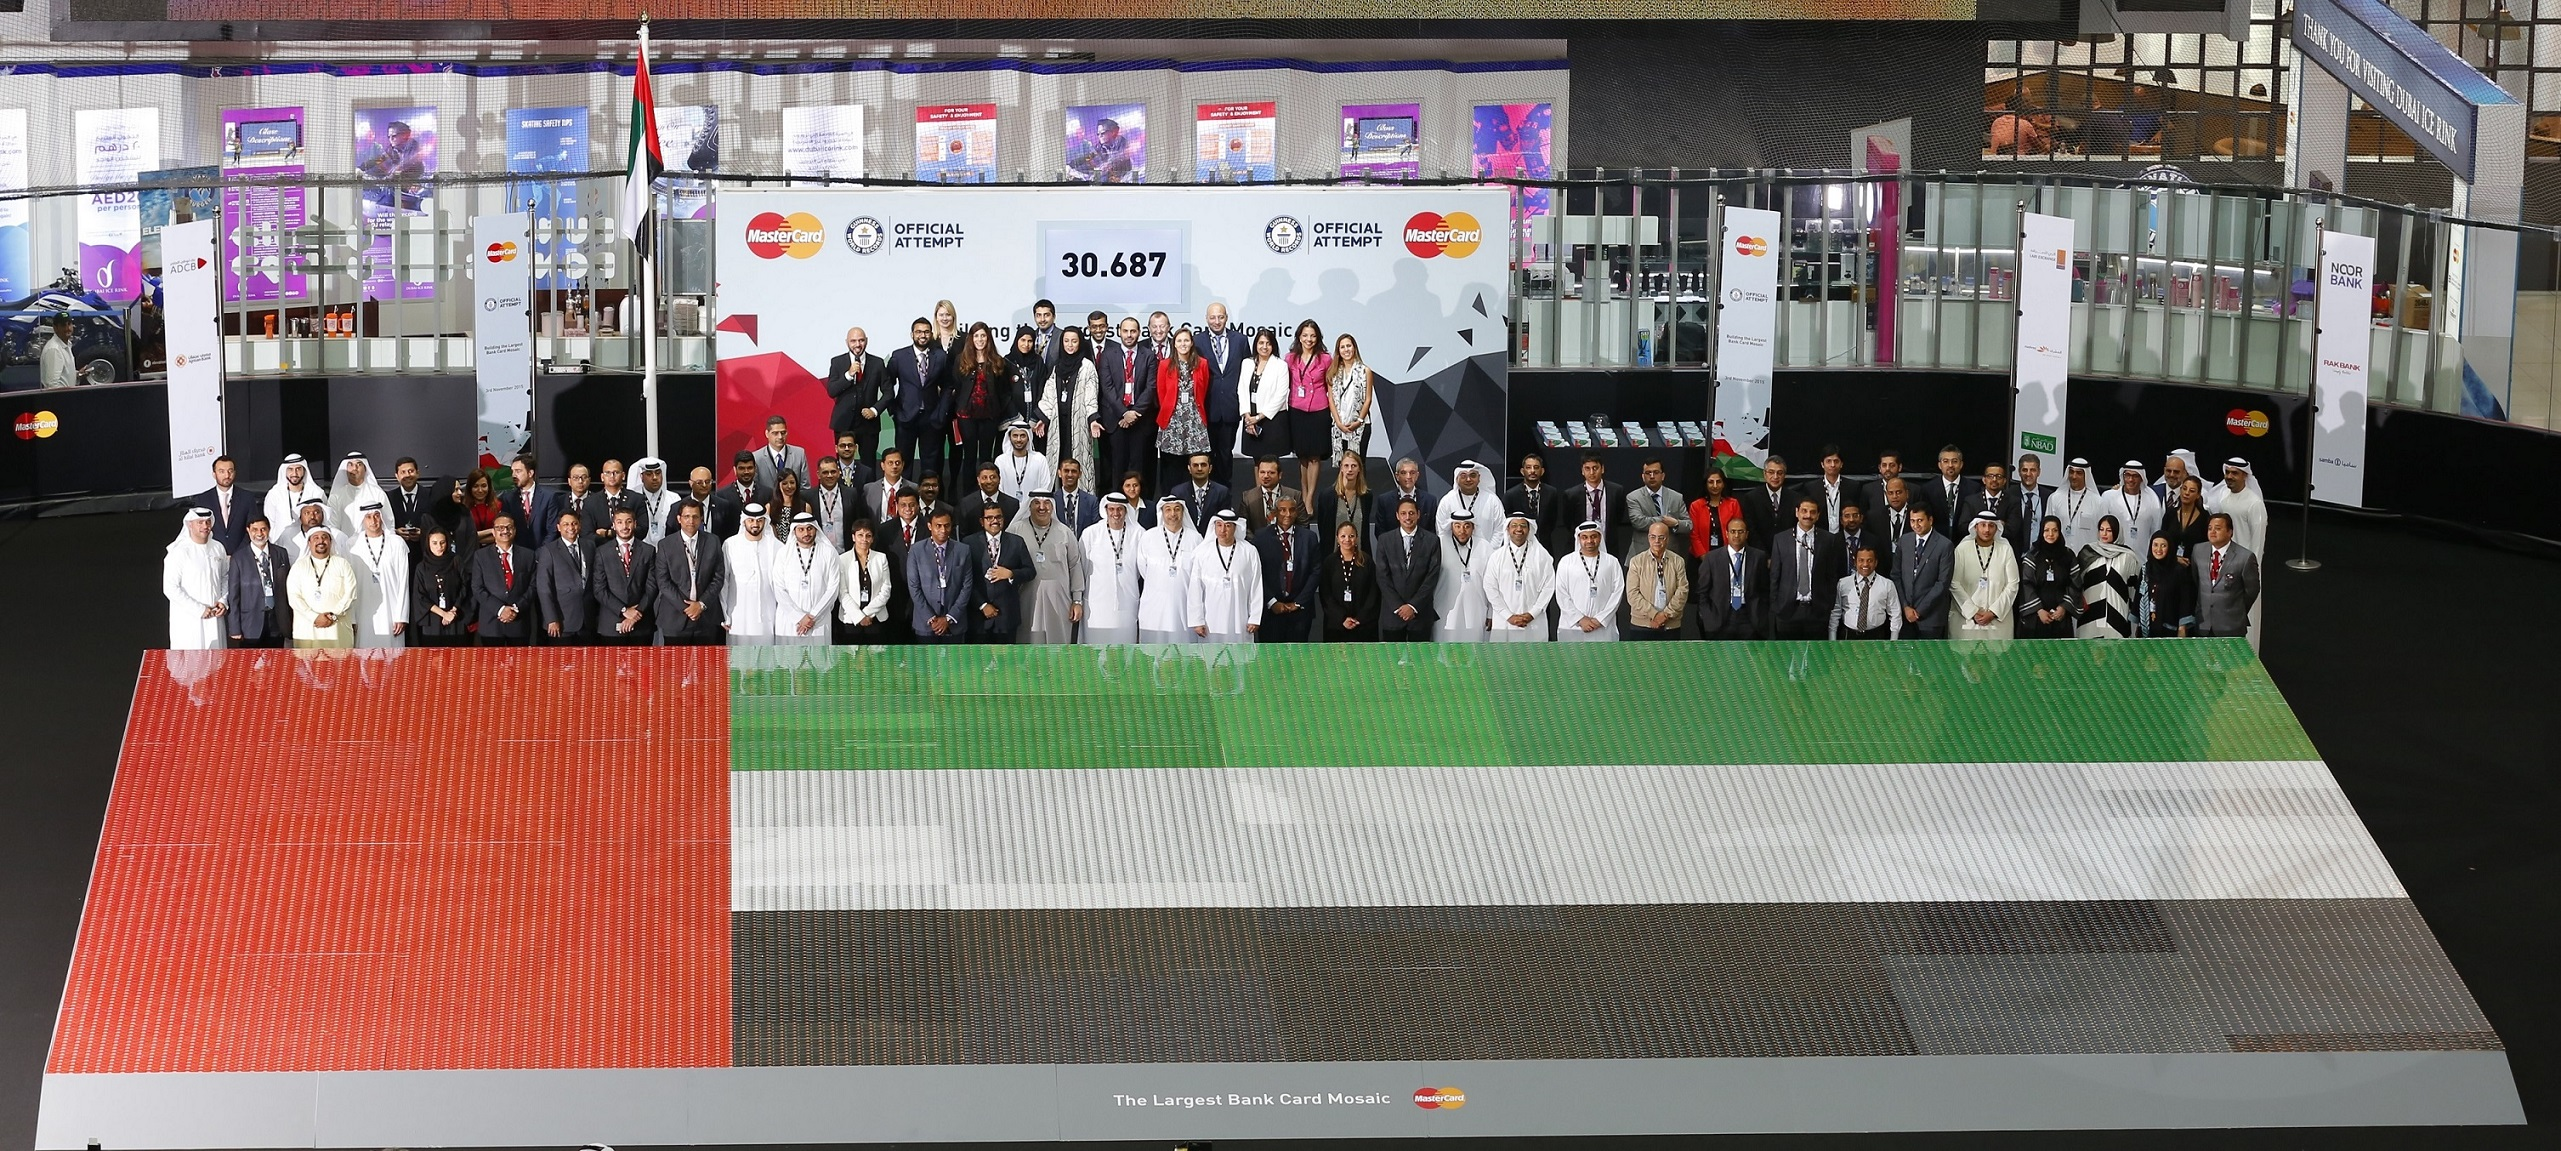 MasterCard - Record Breaking Credit Card Mosaic - Flag Day (1)